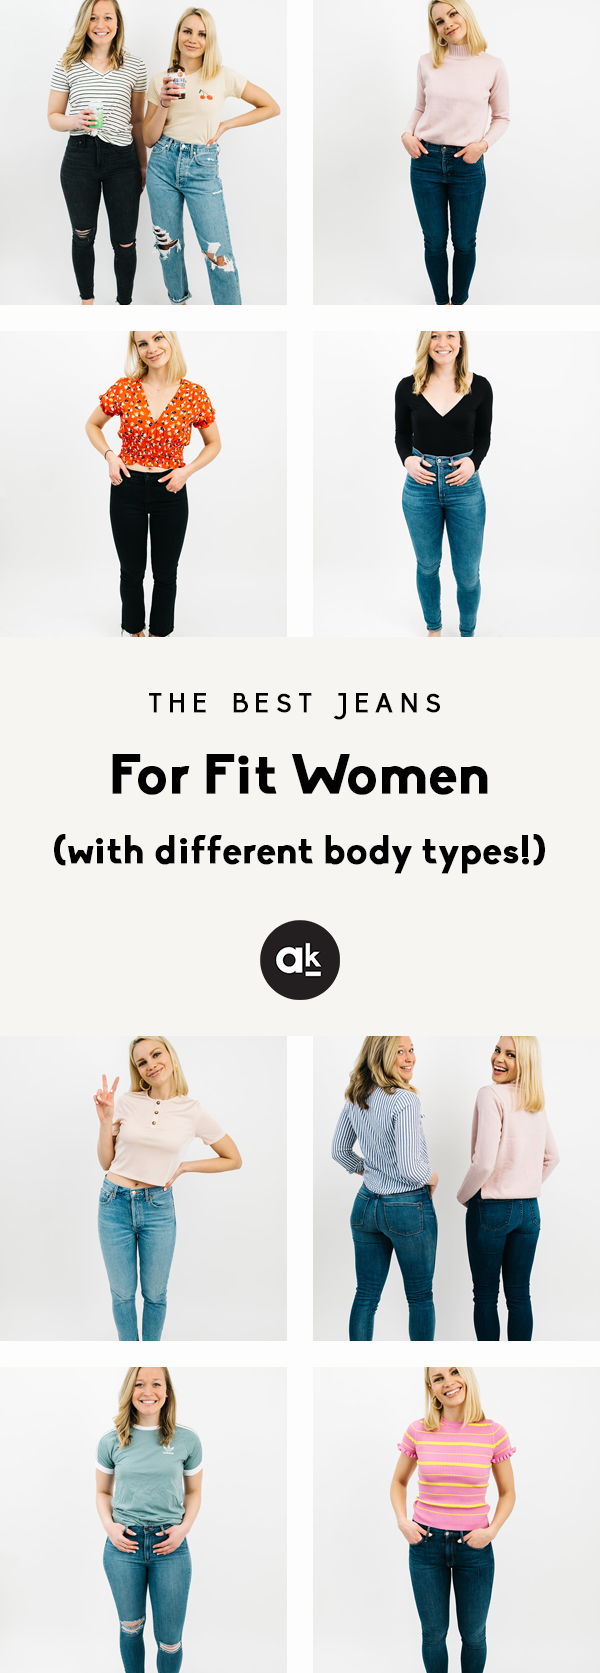 collage of the best jeans for fit women with different body types